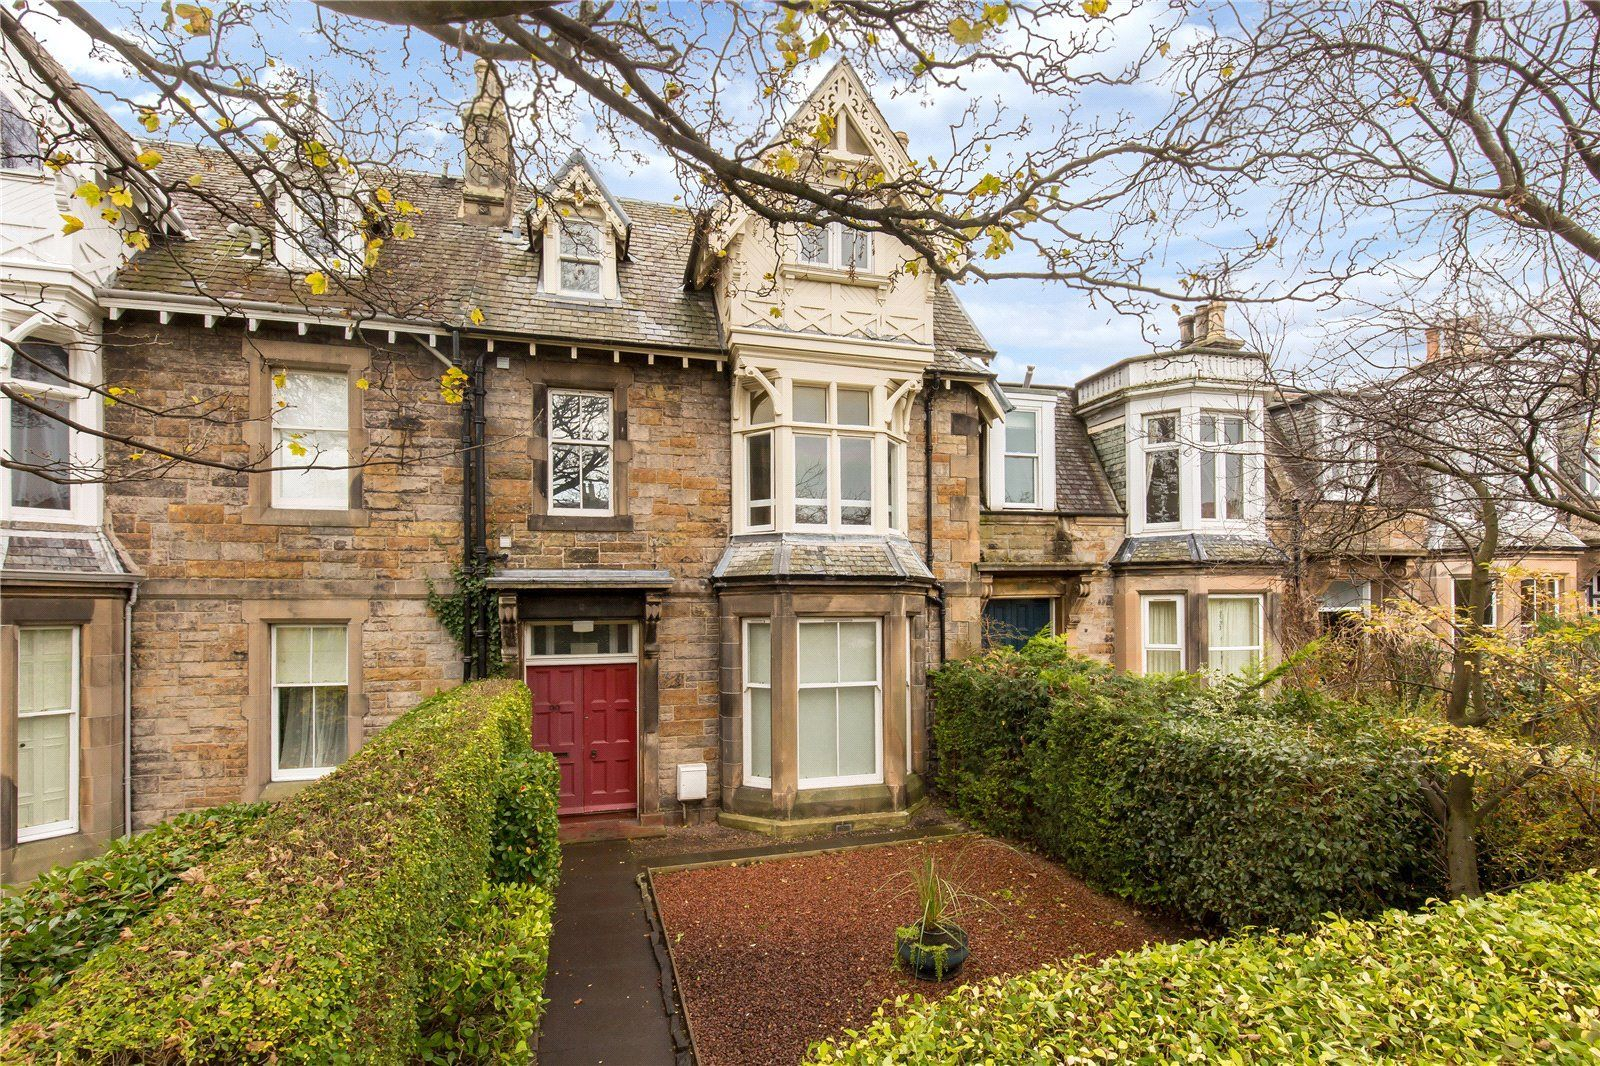 99 Mayfield Road Property For Sale House Styles Mansions